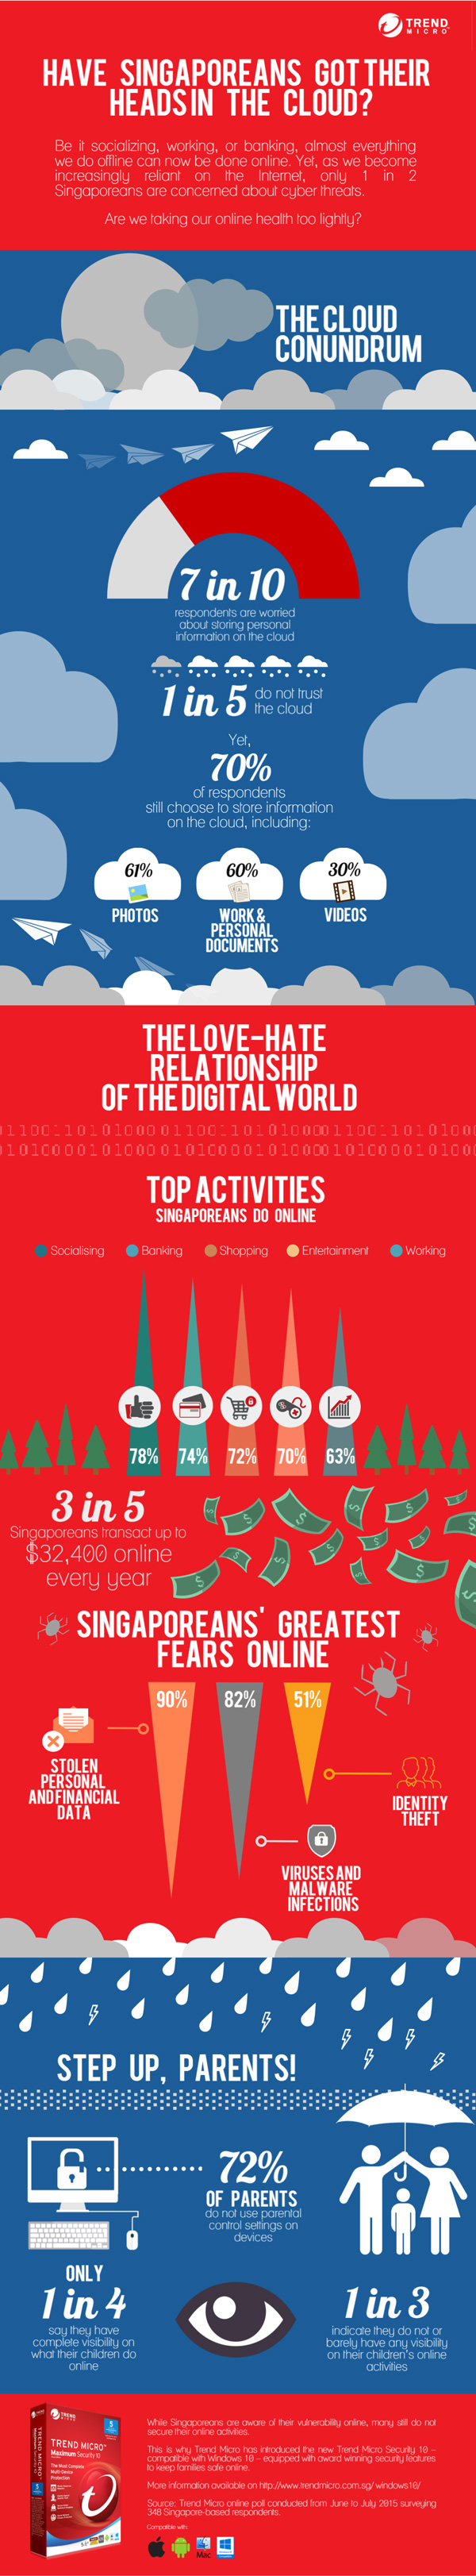 Trend Micro's June to July findings, based off 348 respondents in Singapore.